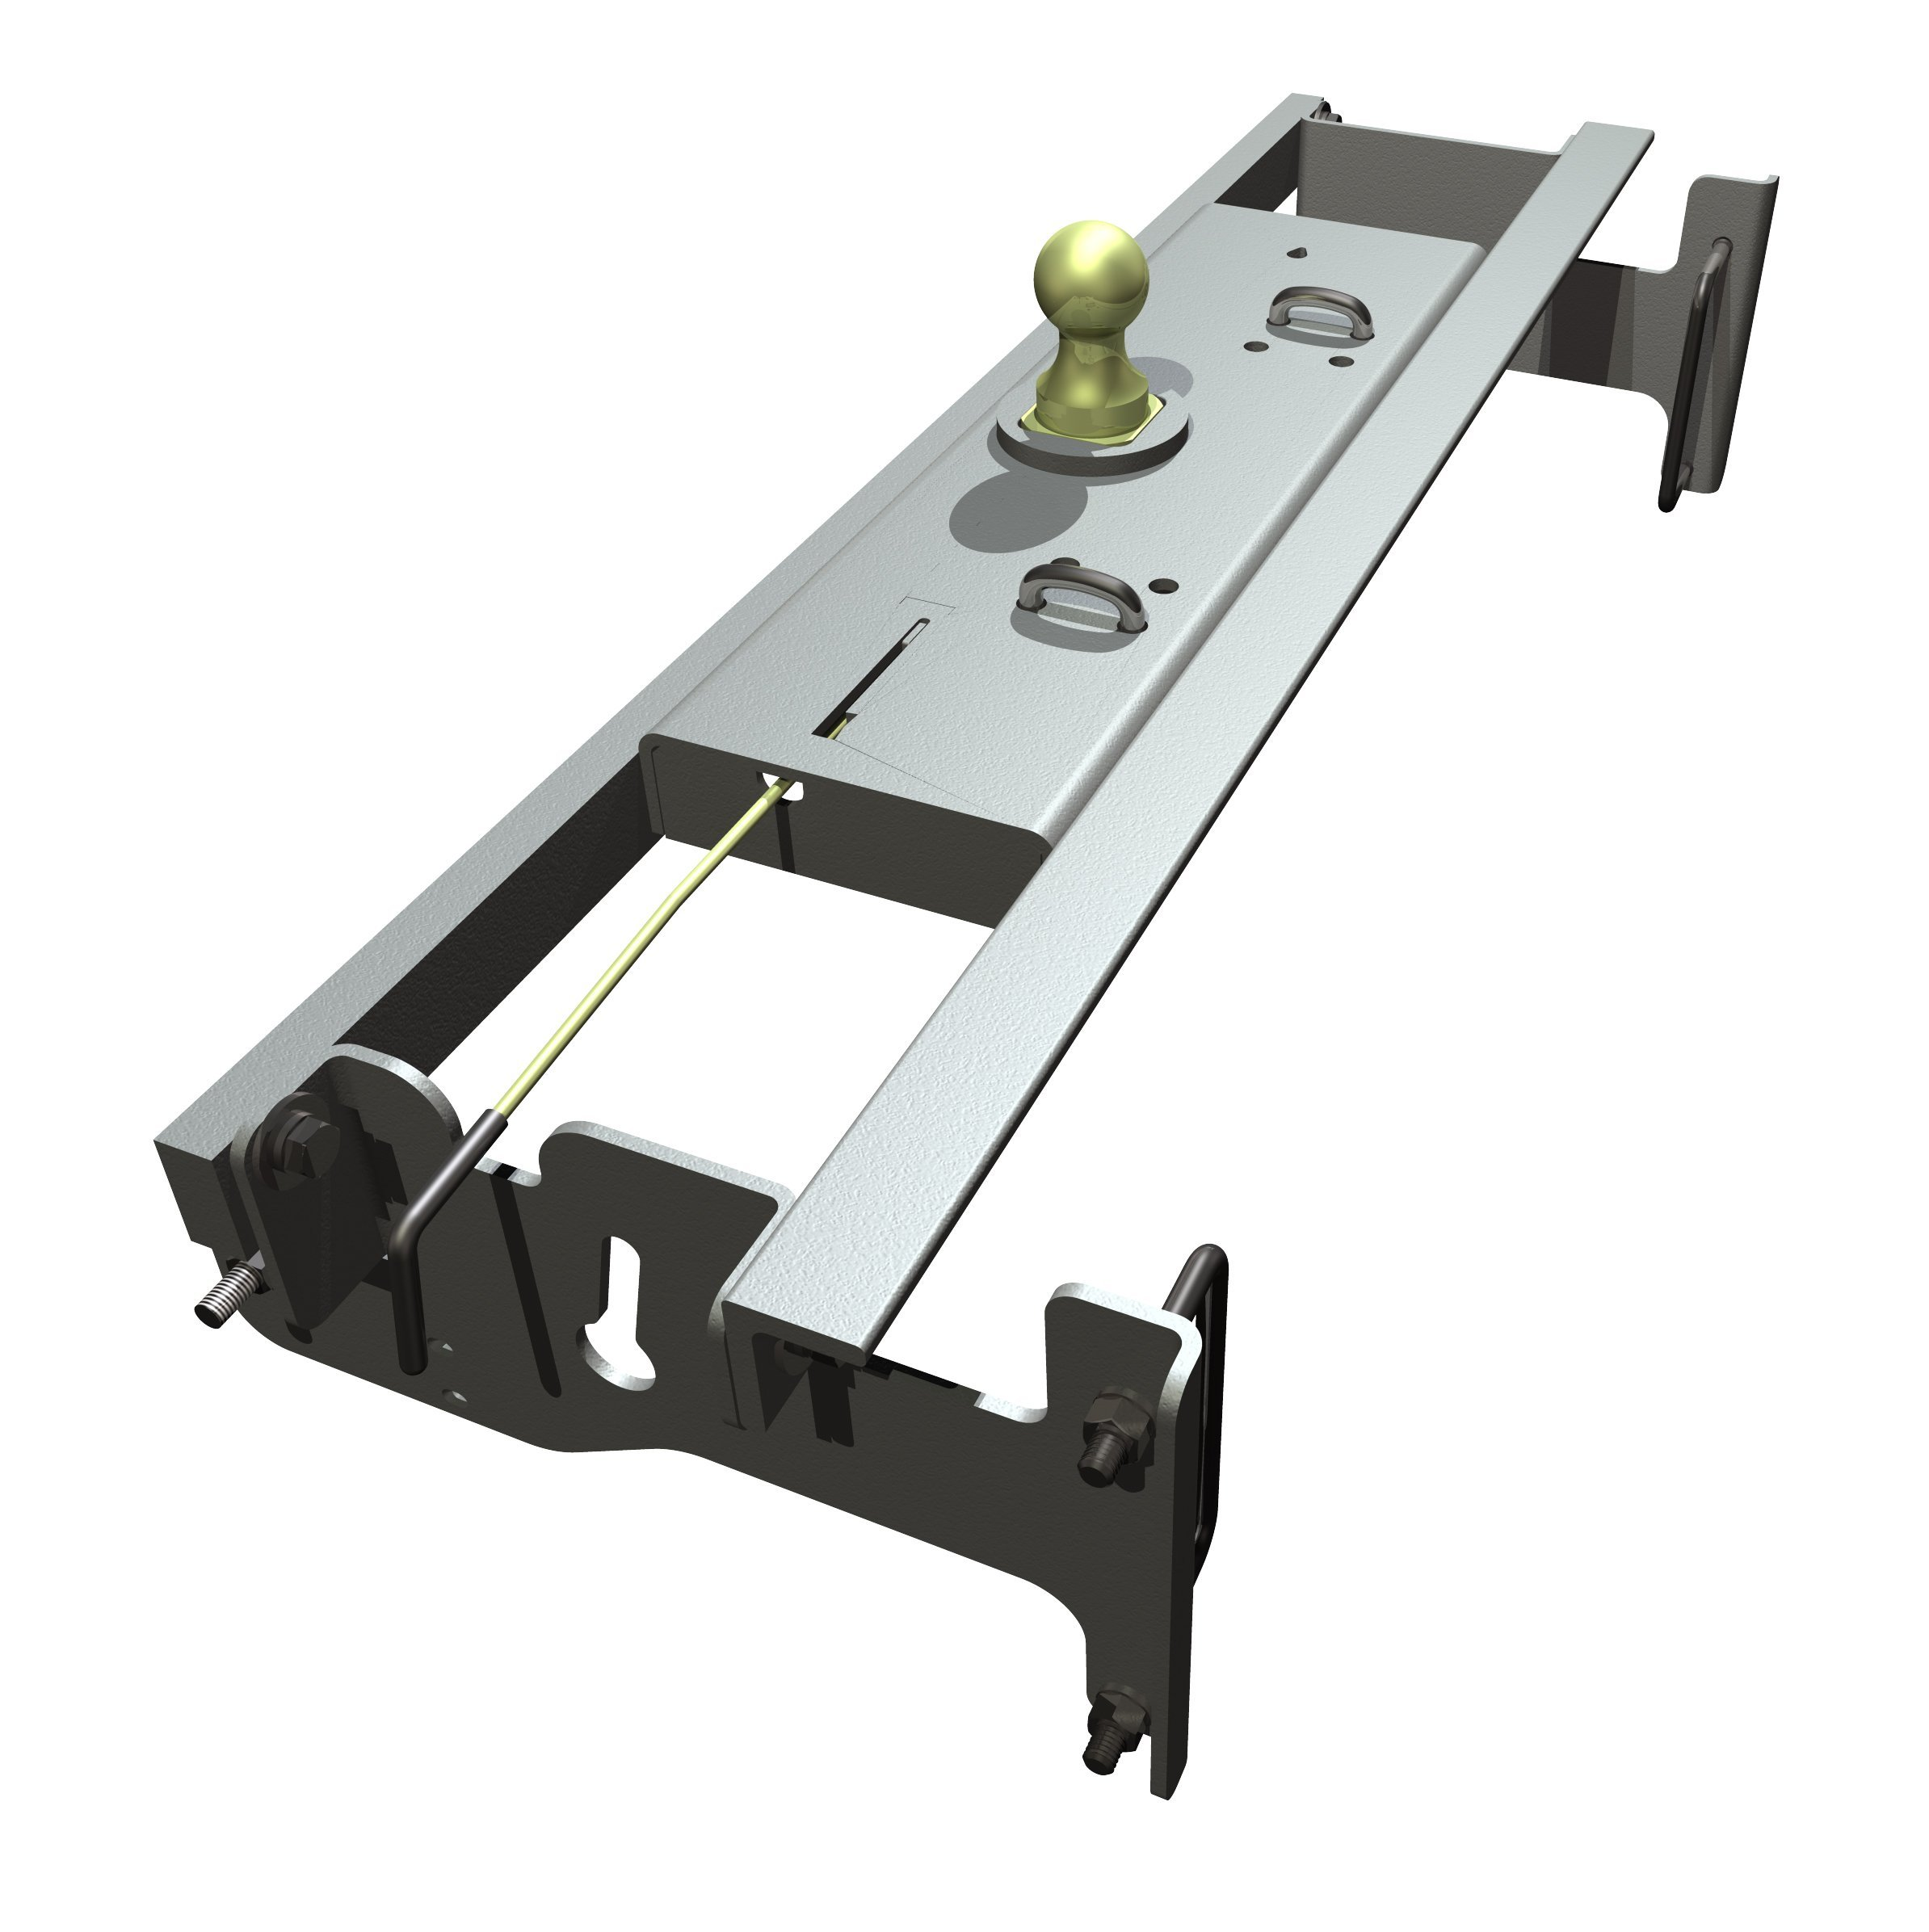 B&W Trailer Hitches 1313 Gooseneck Hitch for Dodge and RAM Trucks by B&W Trailer Hitches